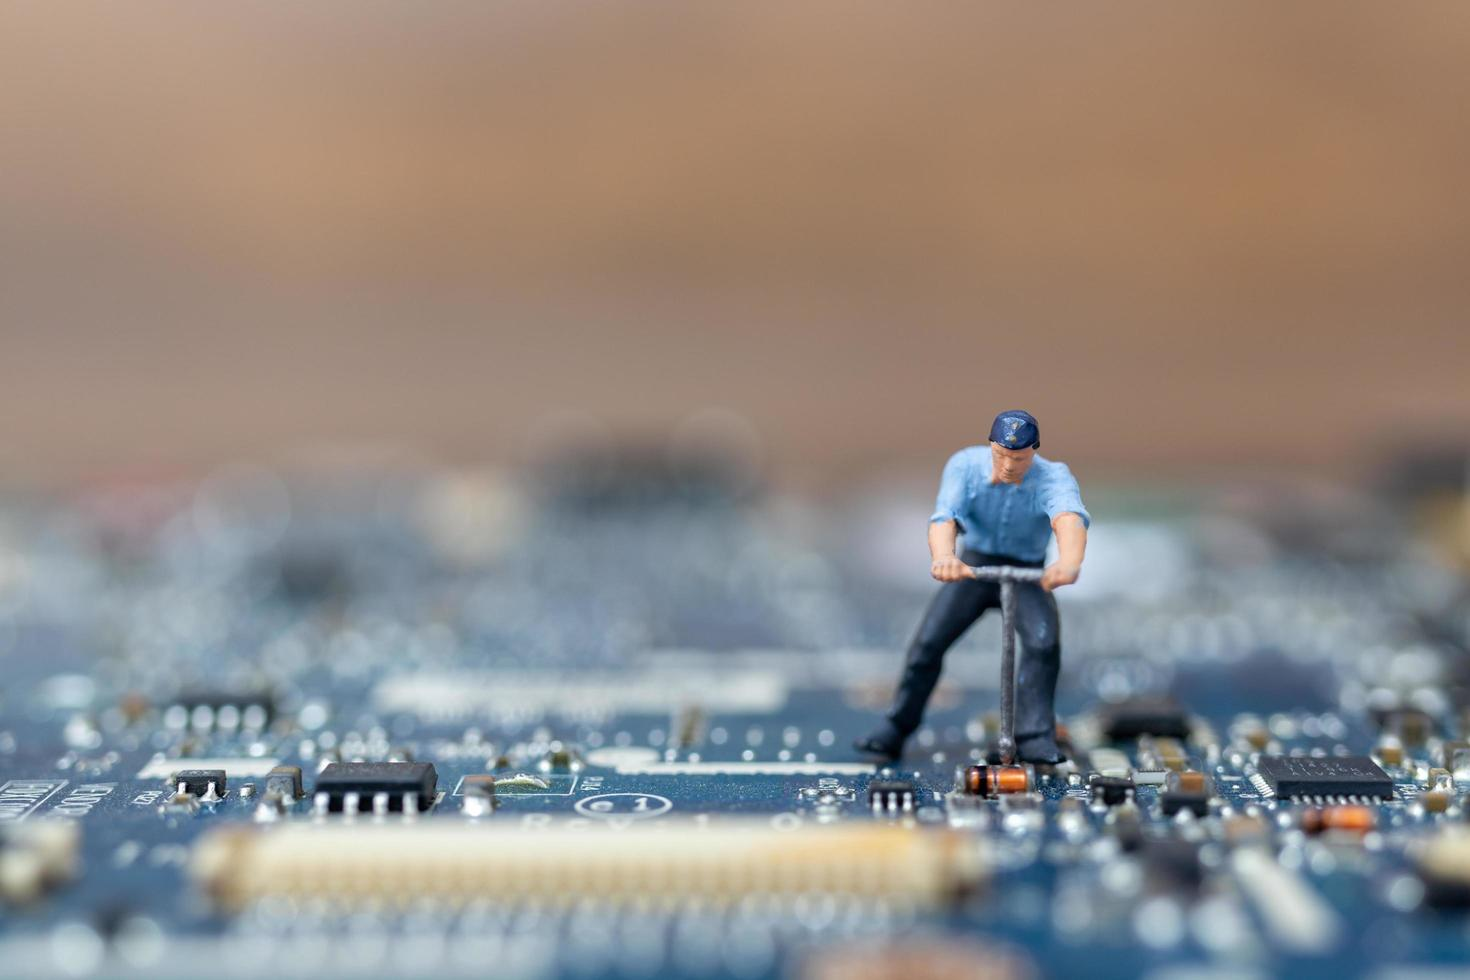 Miniature person working on a CPU board, technology concept photo